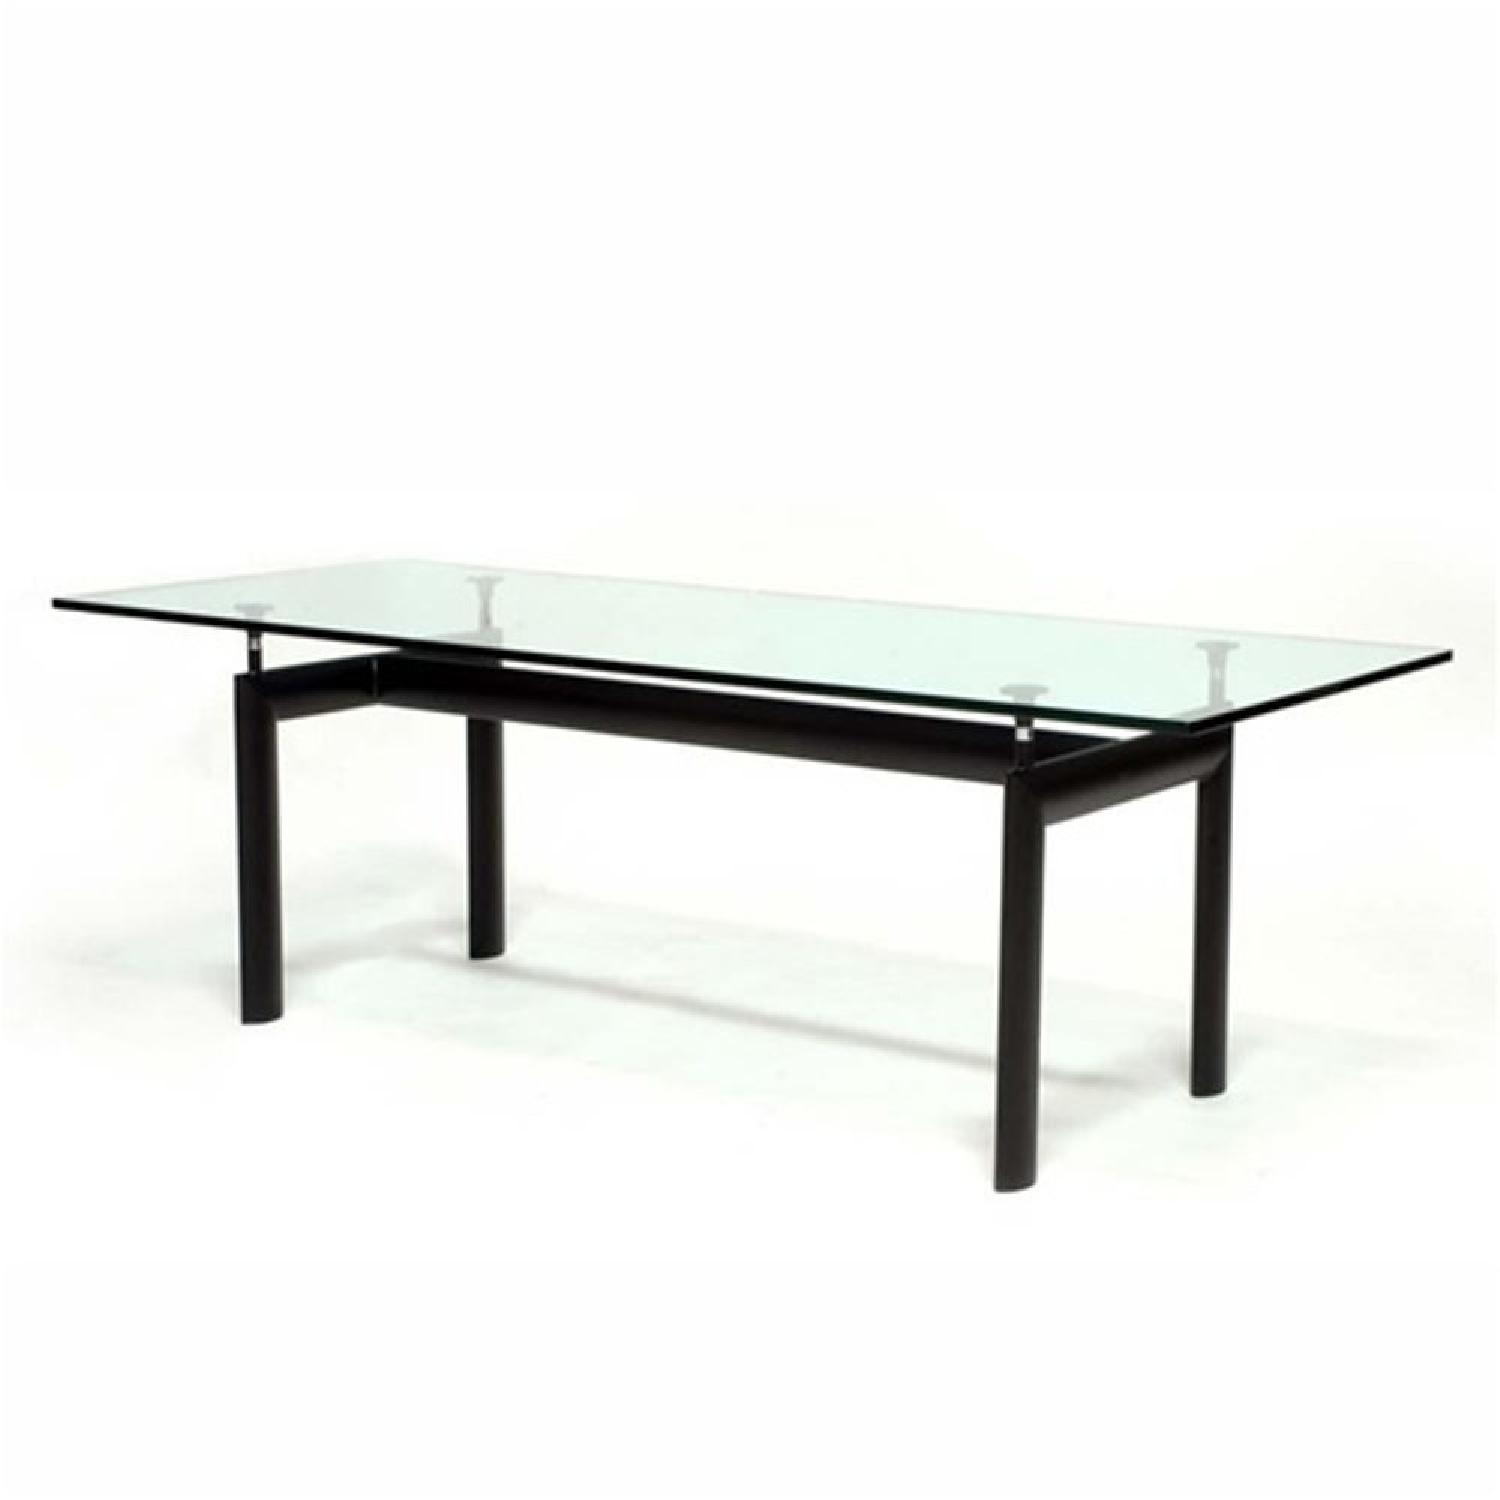 Nuovo Melodrom Dining Room Table - image-1